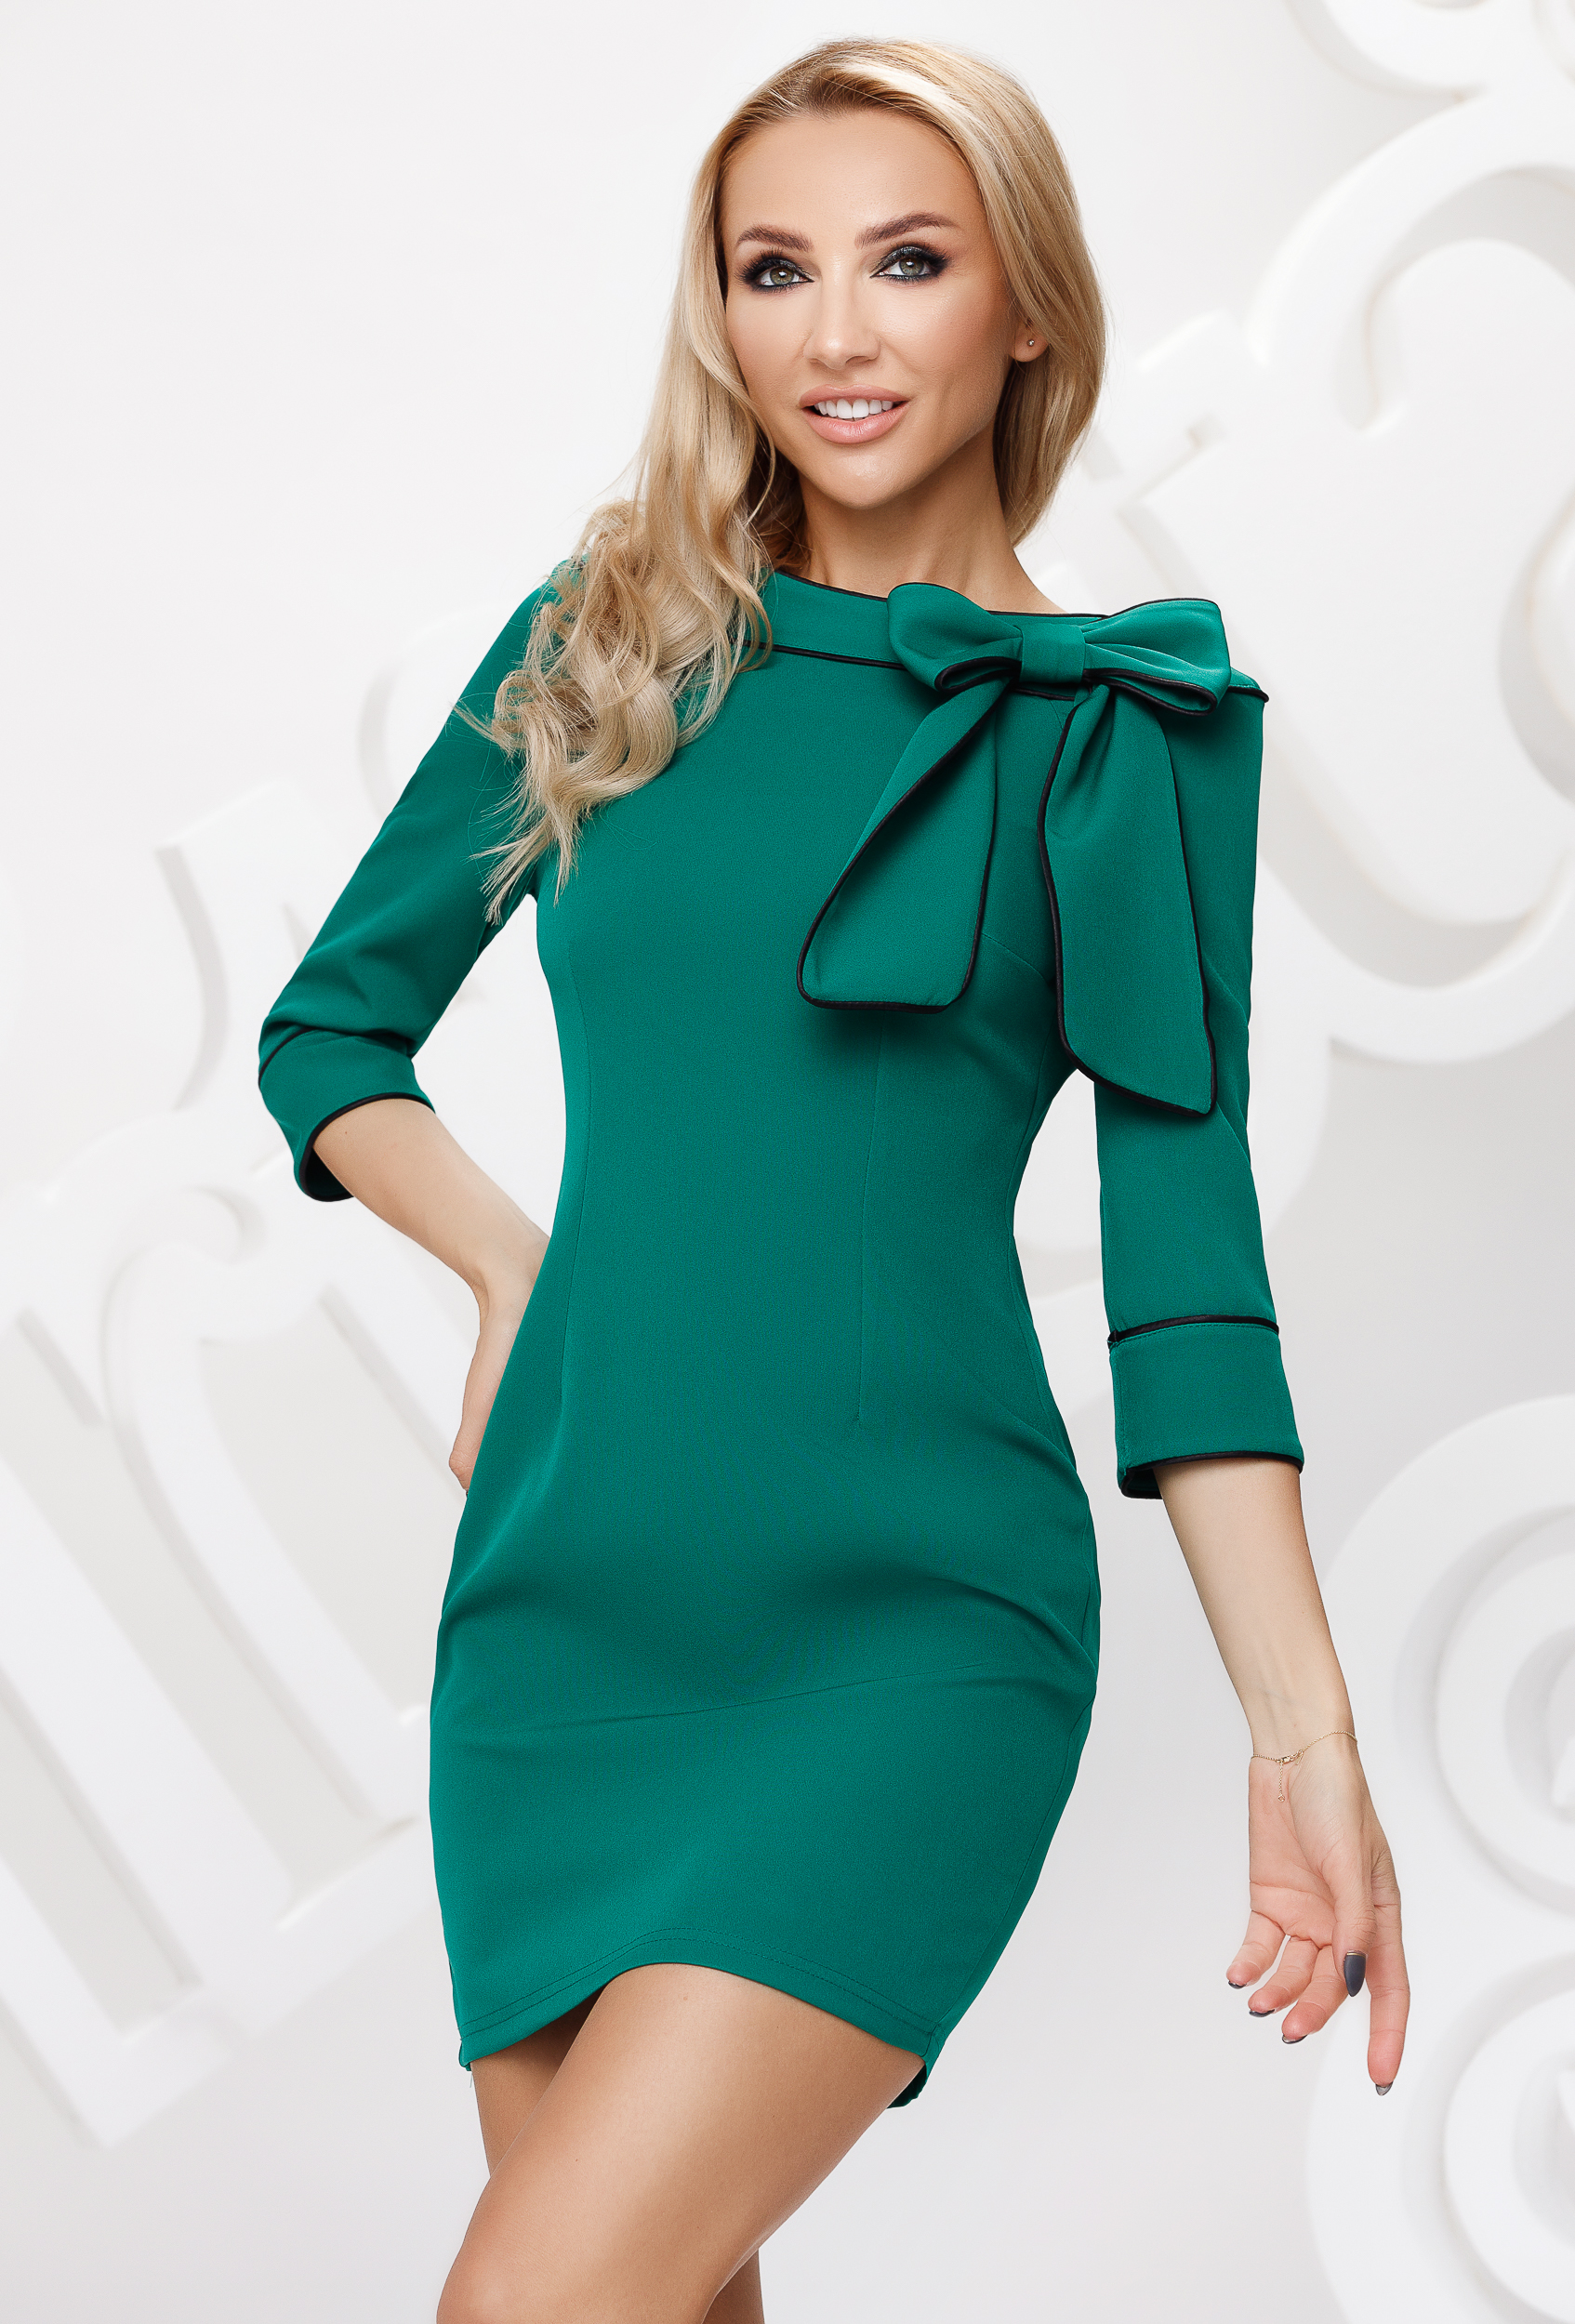 Green dress pencil bow accessory double collar